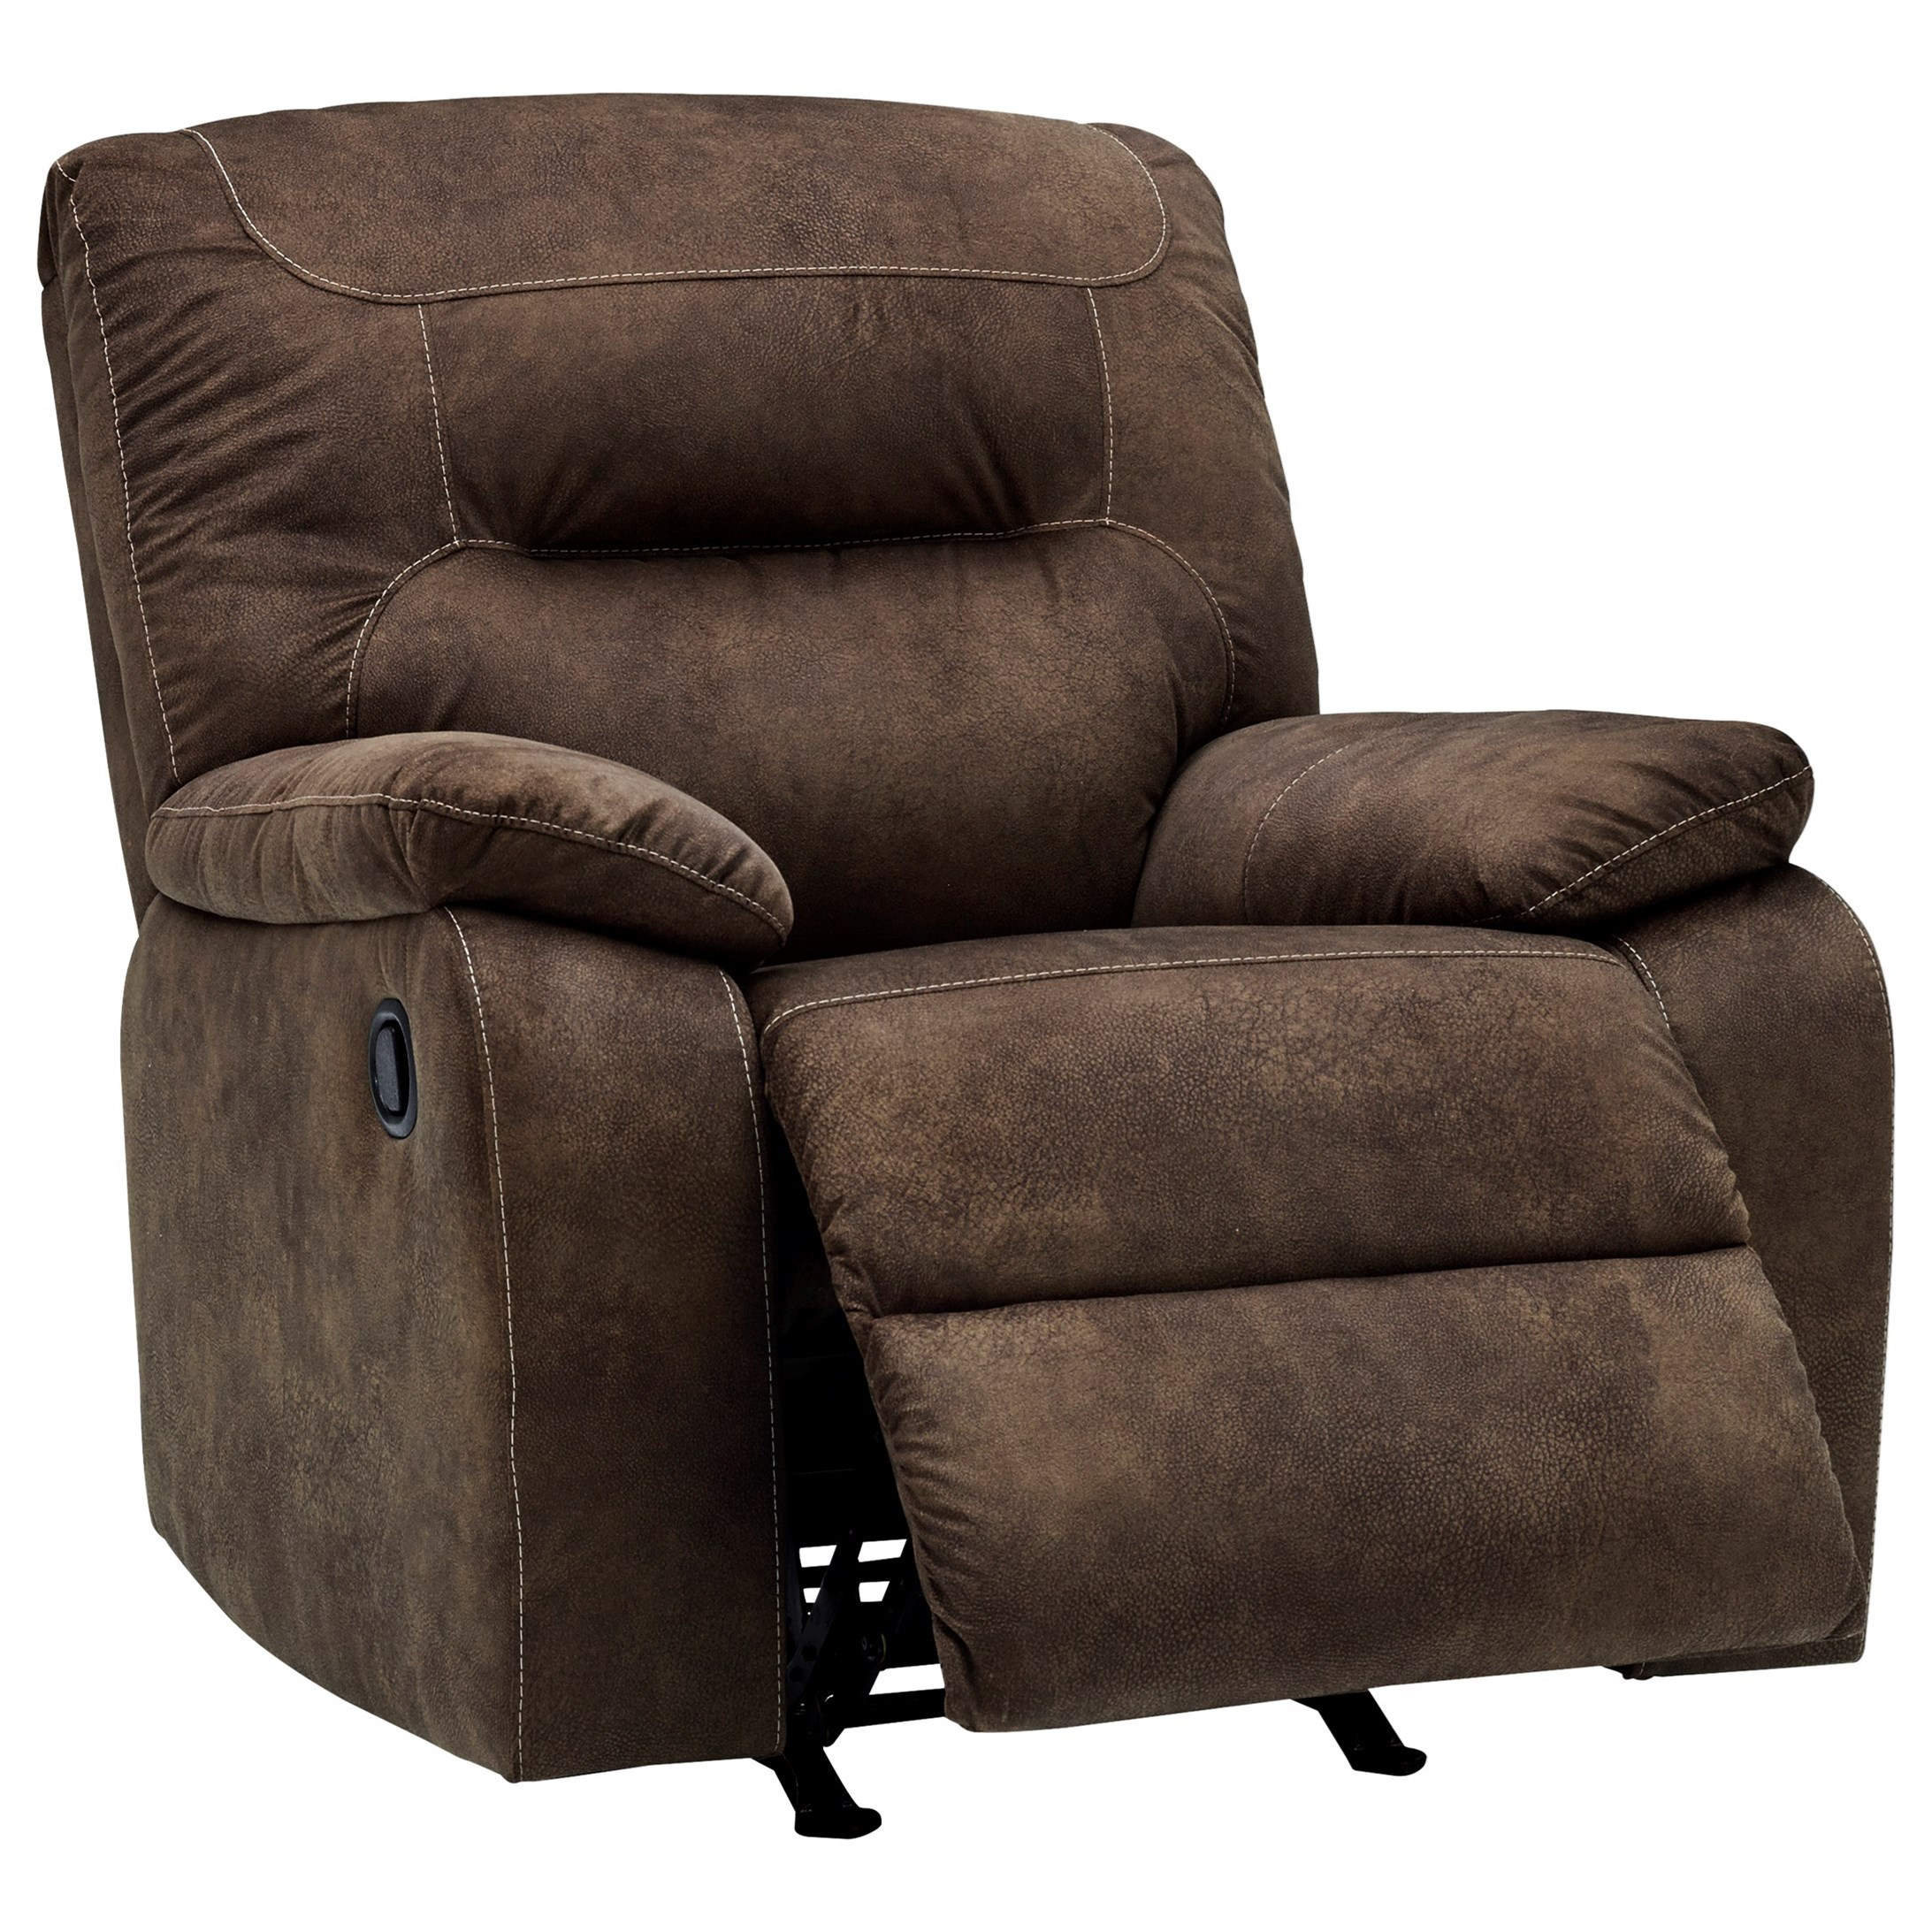 Bolzano Rocker Recliner by Signature Design by Ashley at Northeast Factory Direct